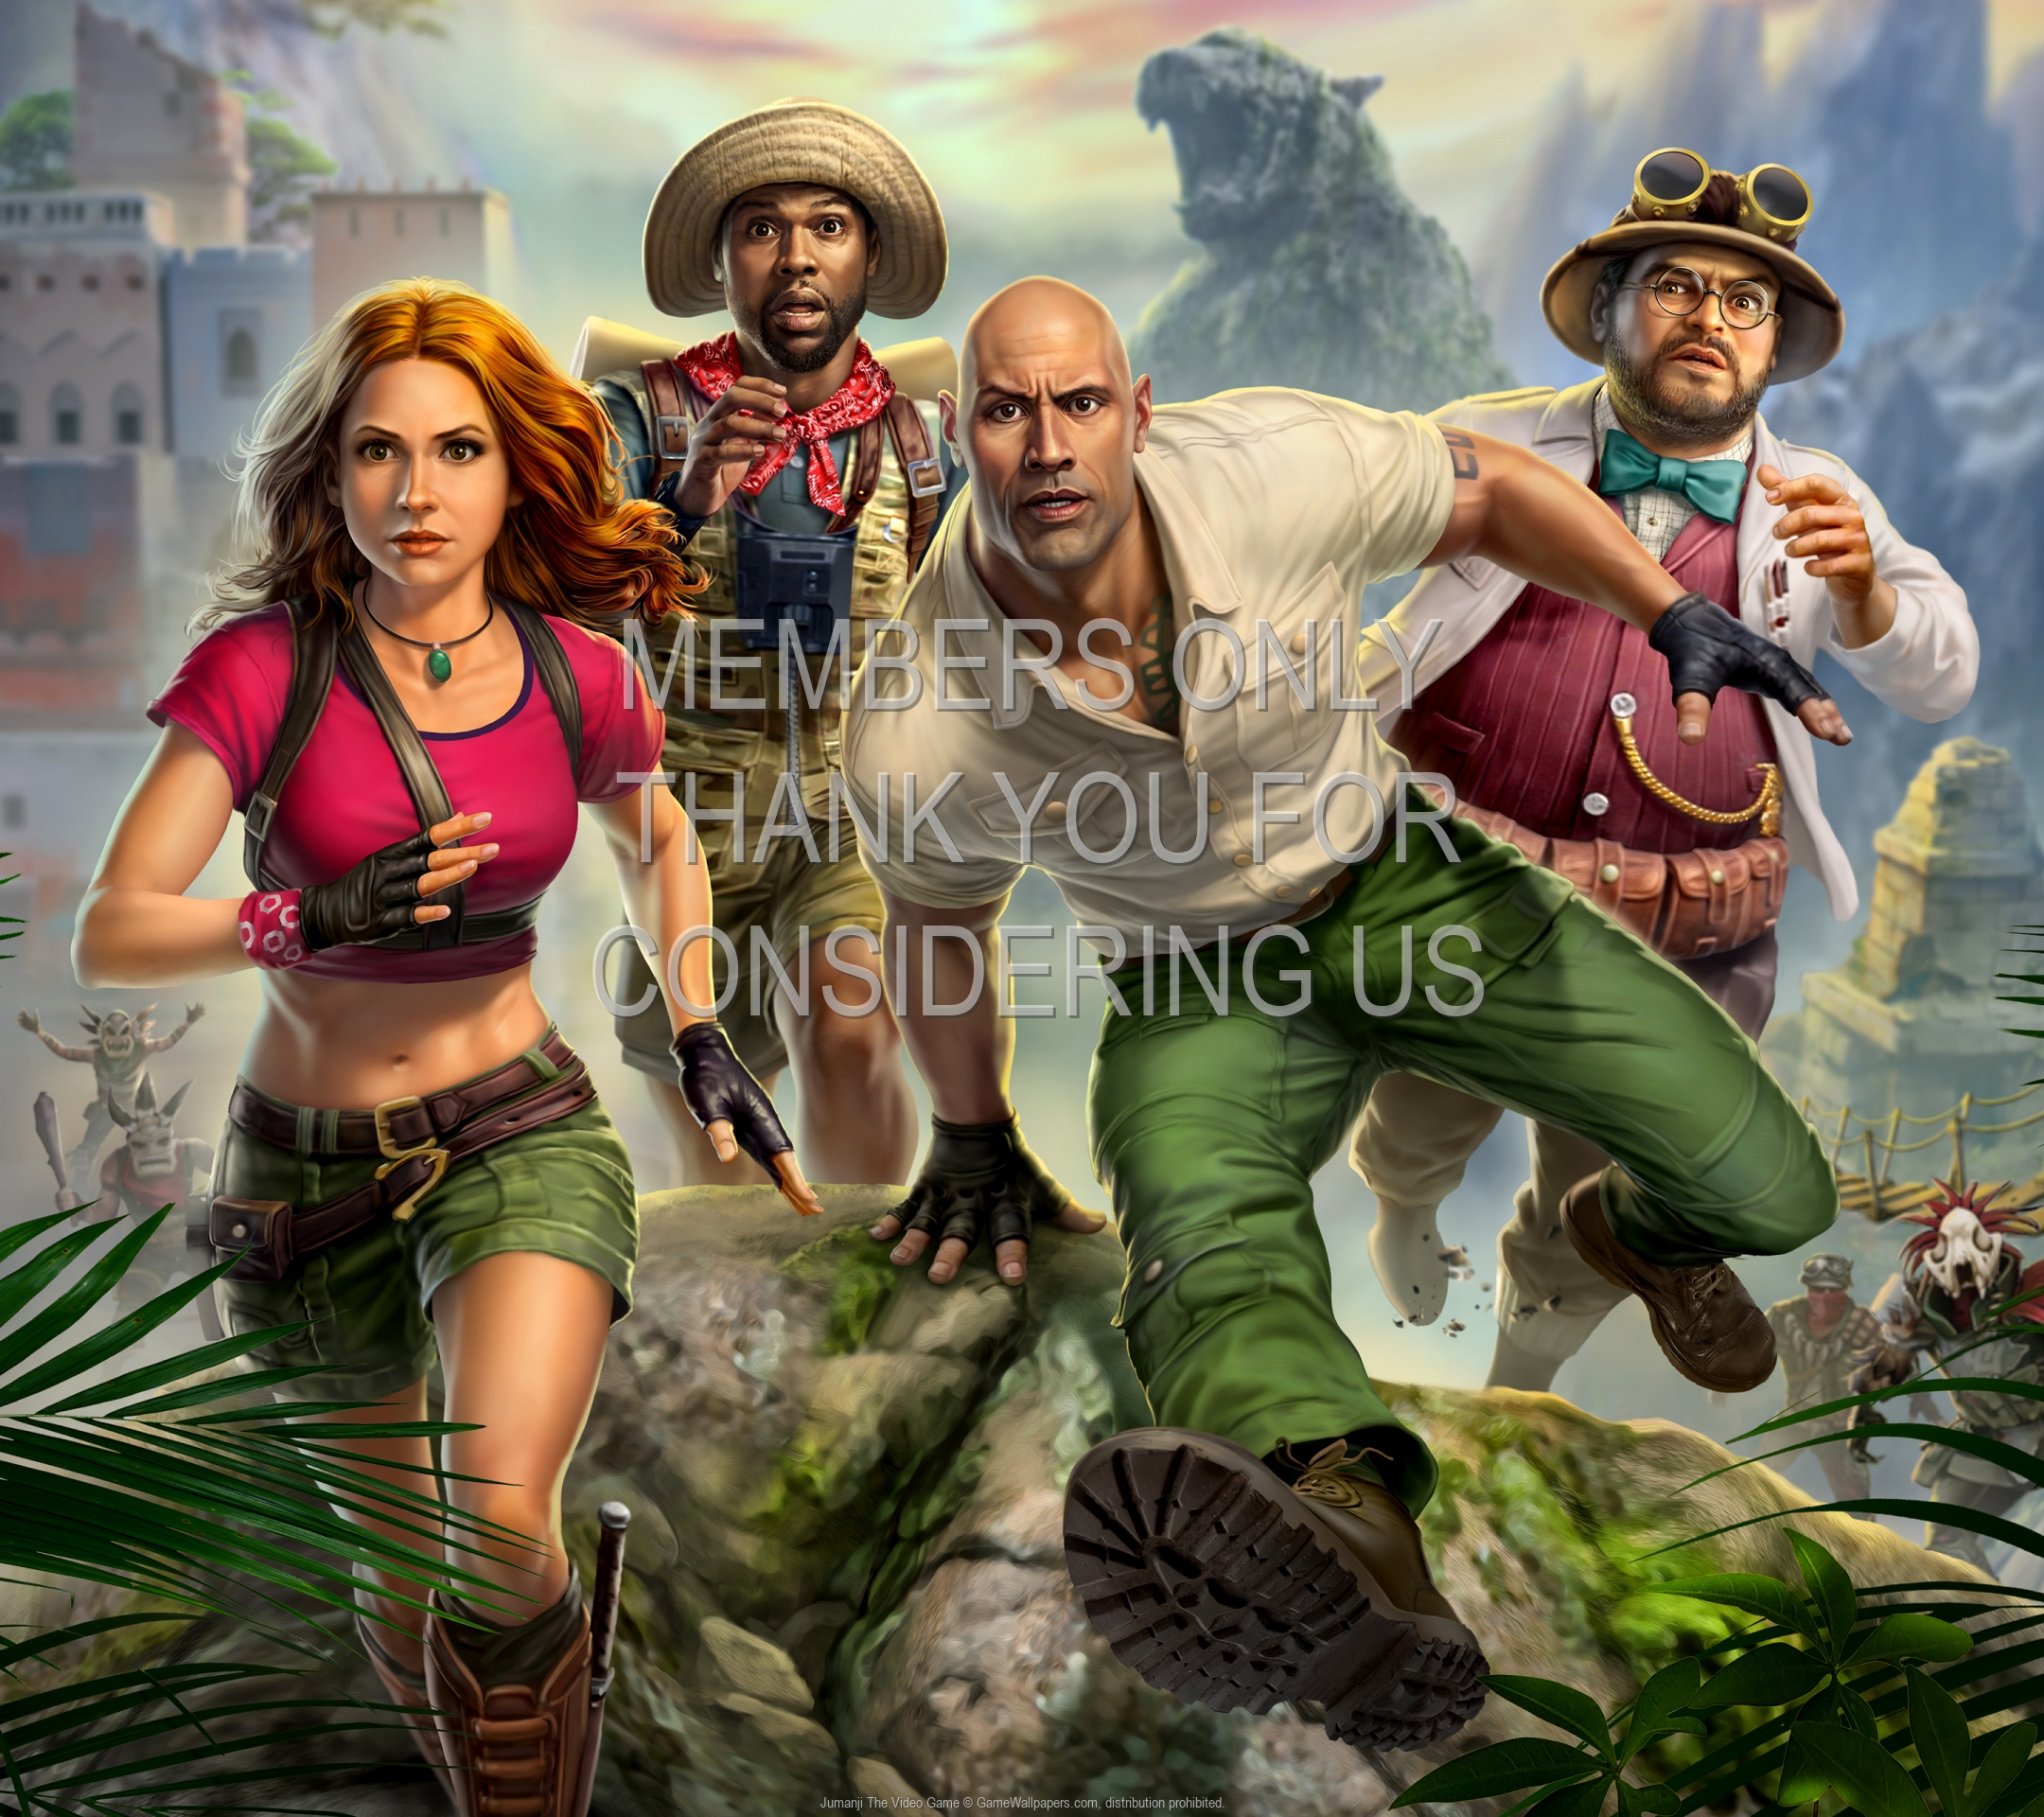 Jumanji: The Video Game 1920x1080 Móvil fondo de escritorio 01